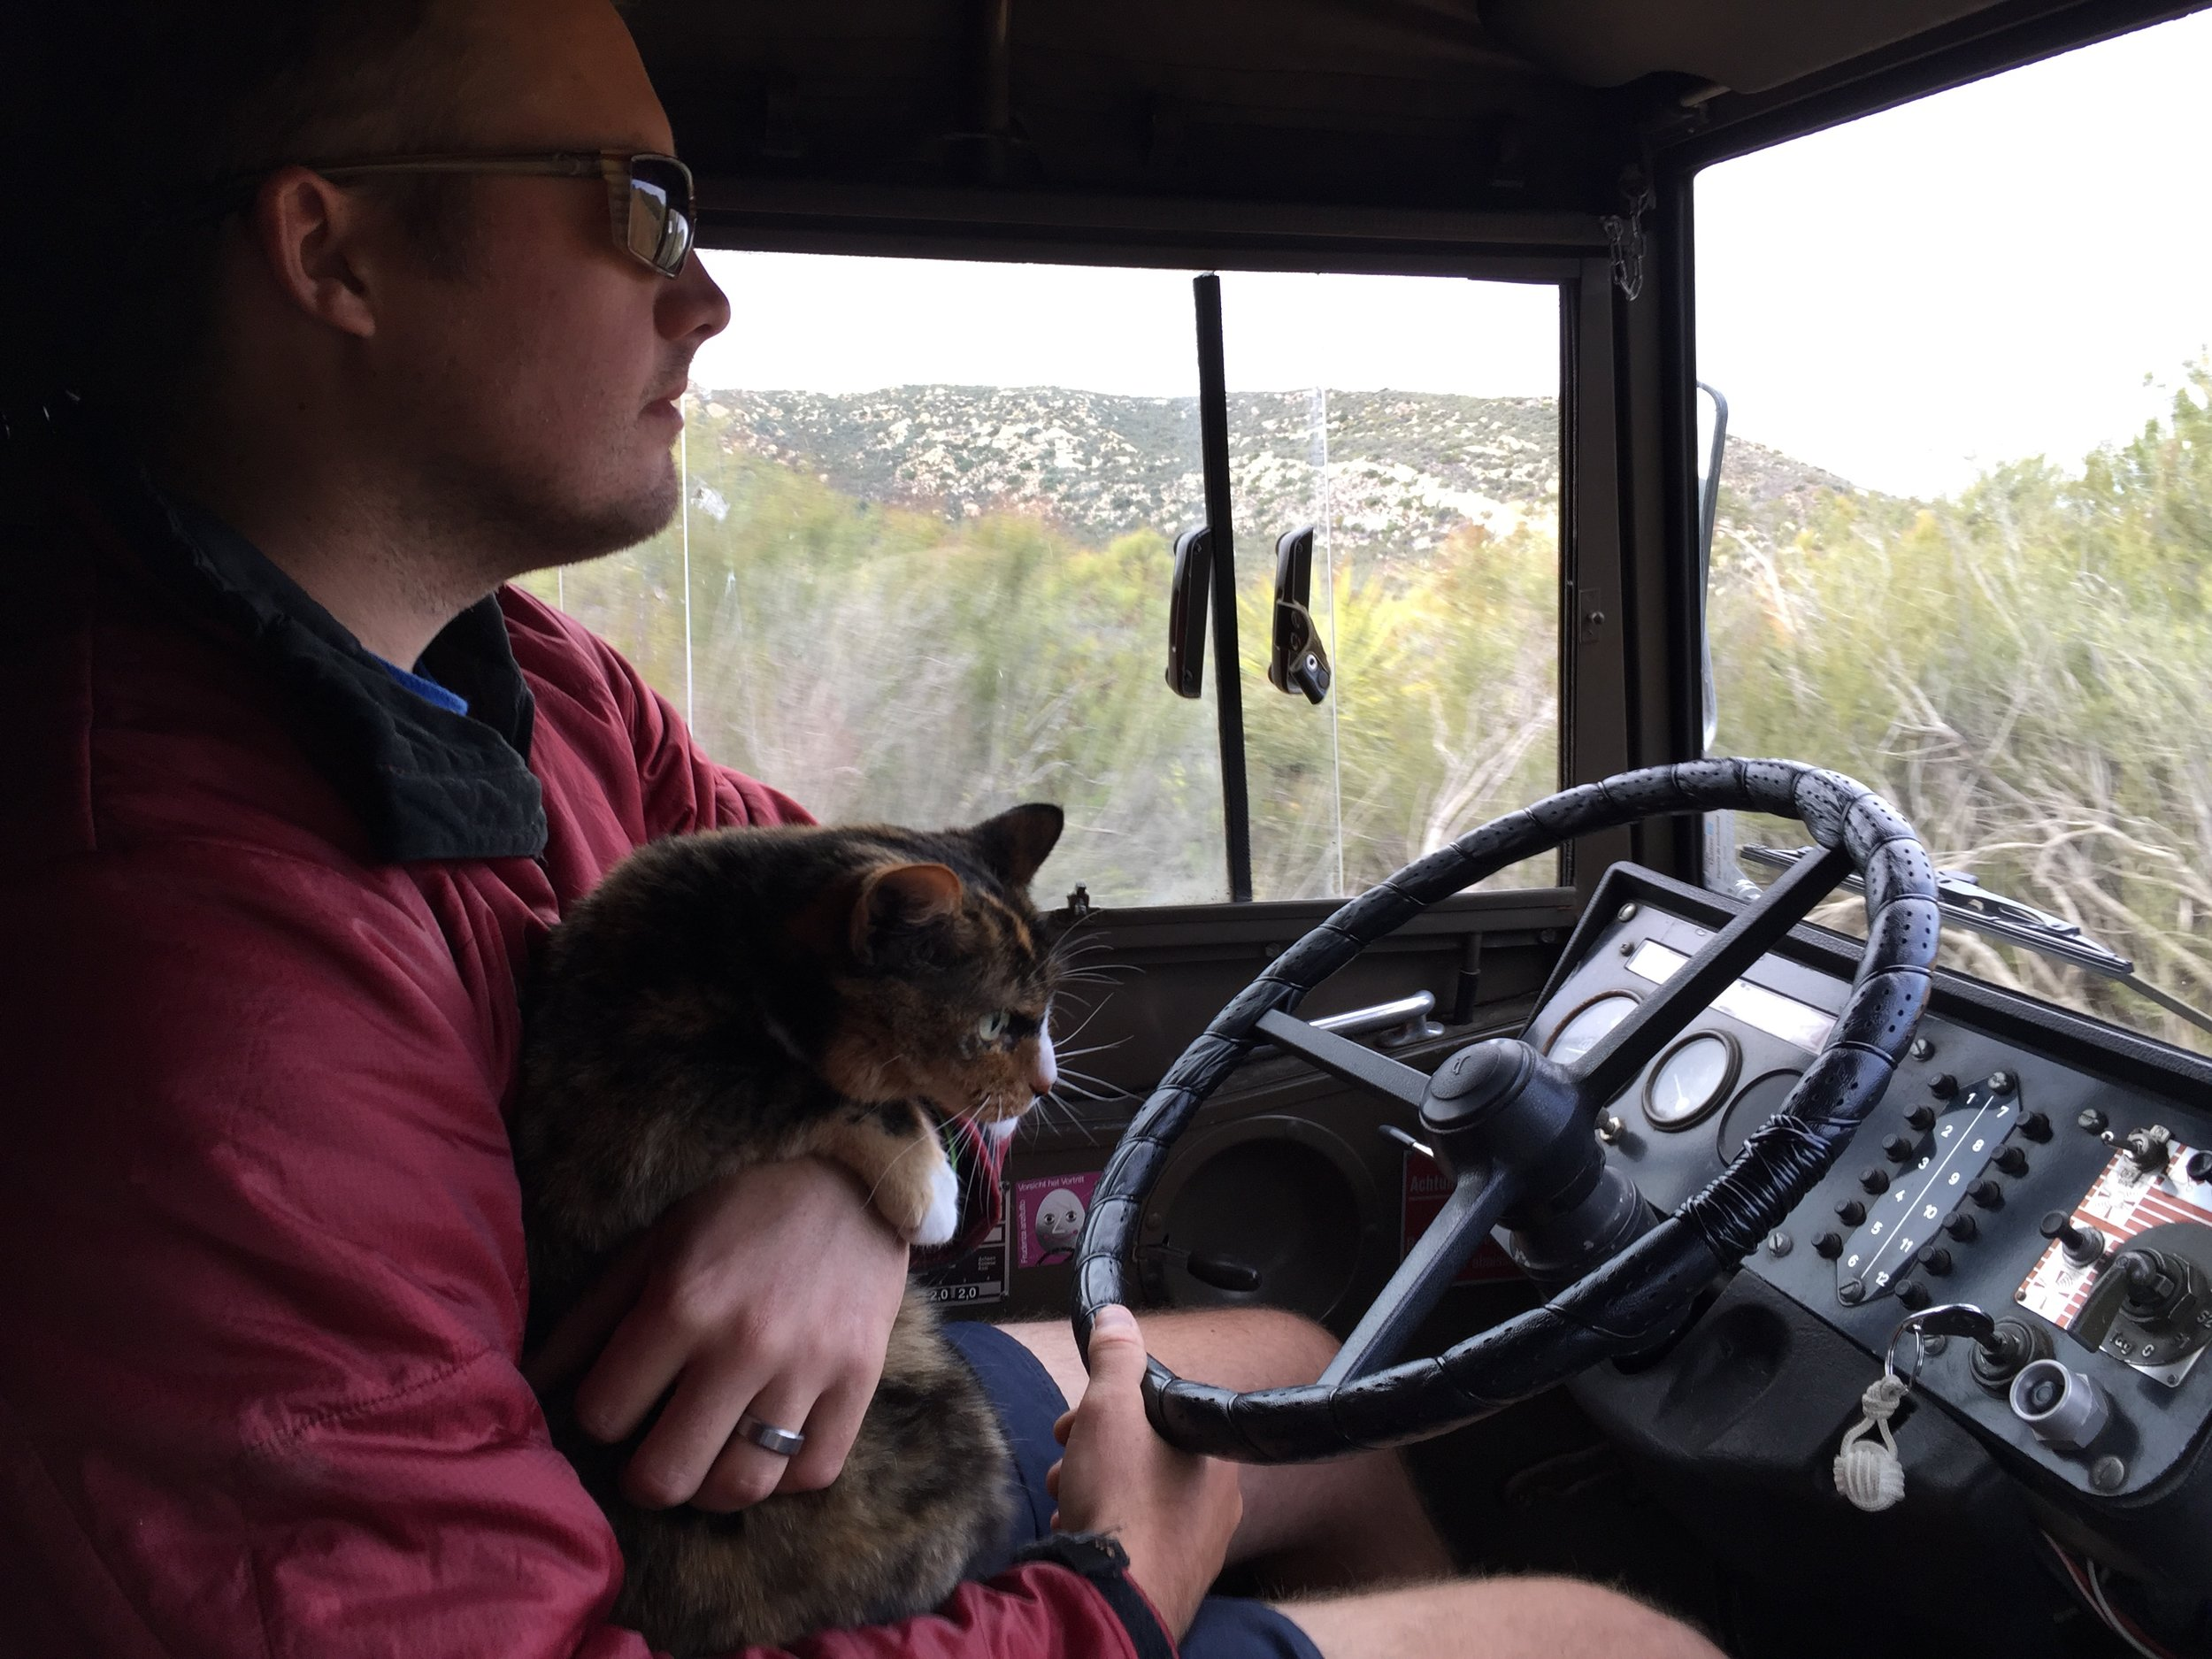 4-wheeling with a cat!